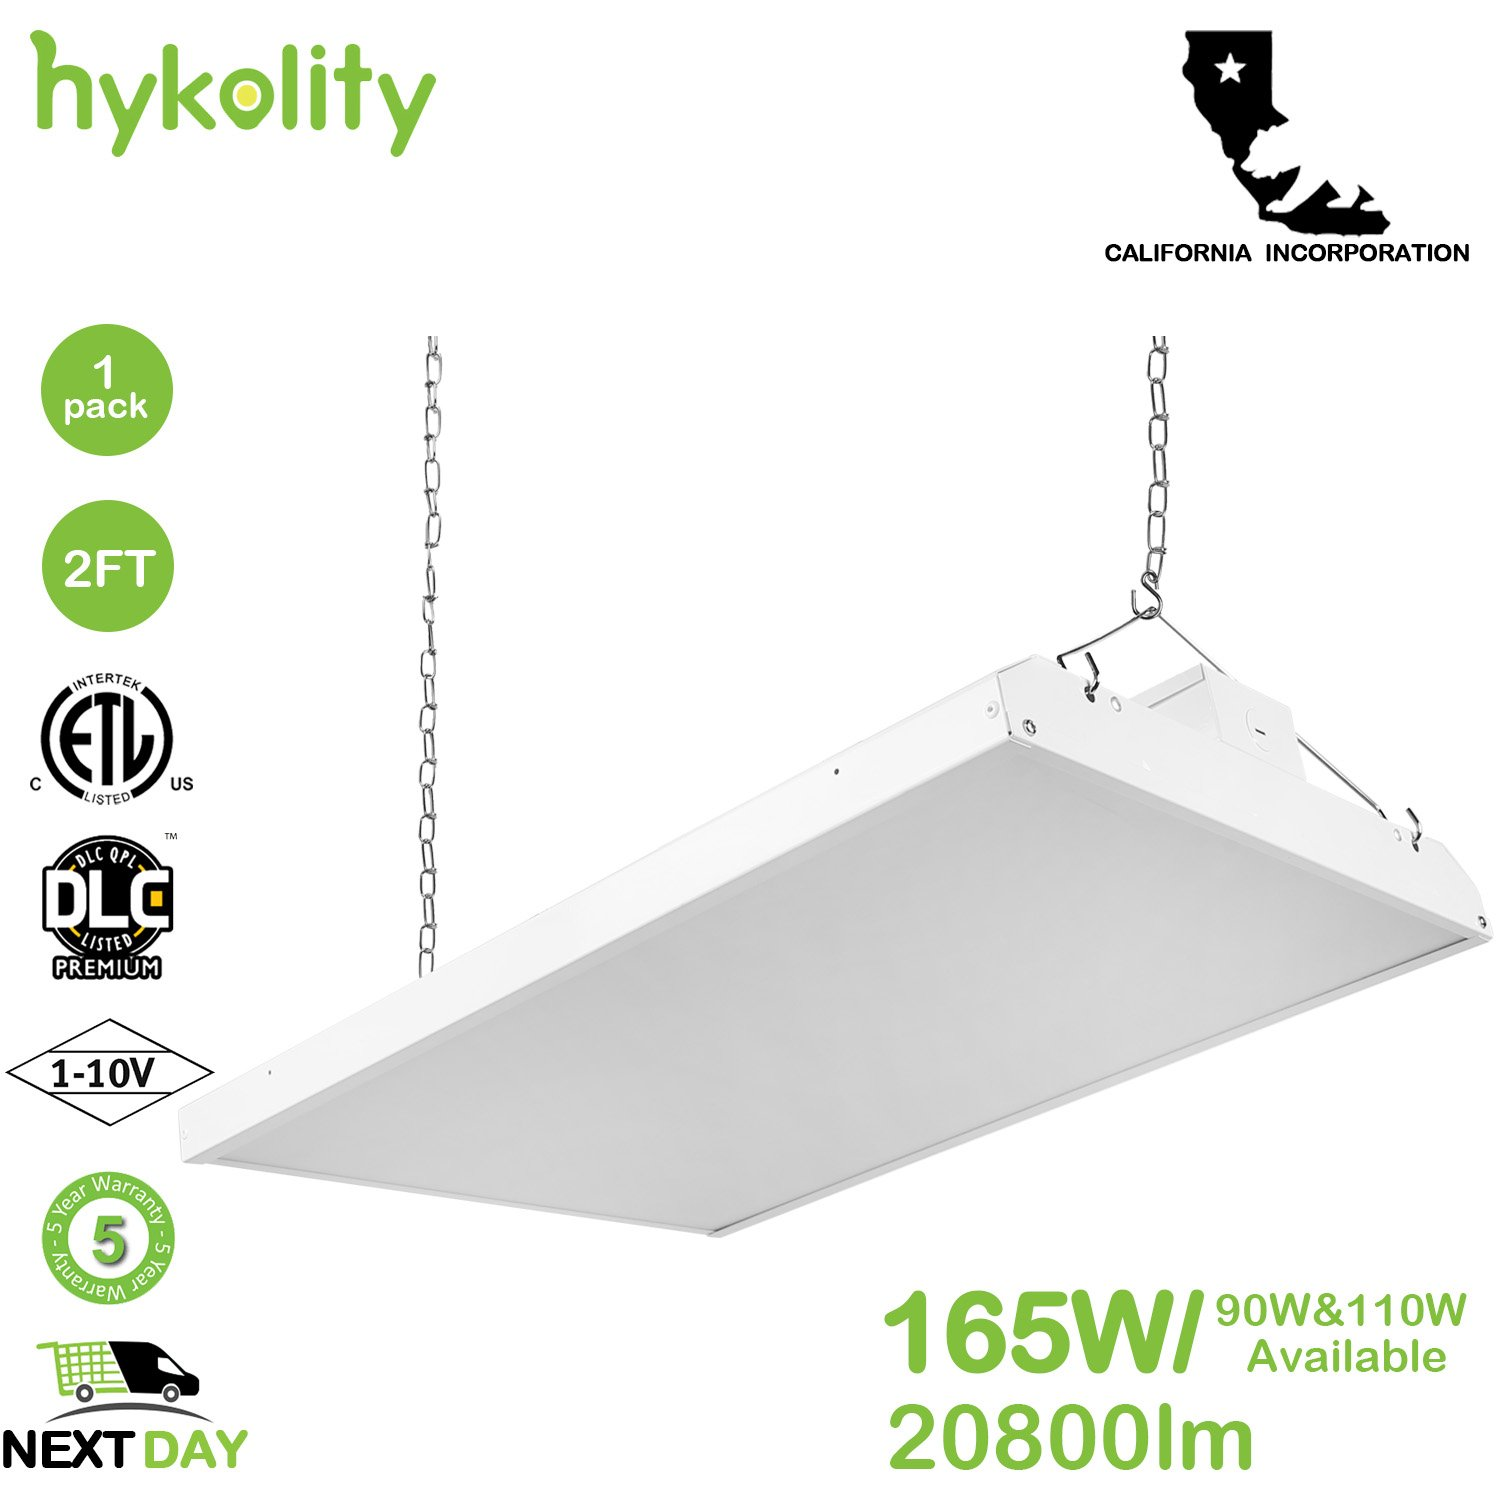 Hykolity 2FT LED High Bay Shop Light Fixture 165W [600W Fluorescent Equivalent] 21450lm 5000K Dimmable Commercial Grade Warehouse Area Indoor Industrial Lights DLC Premium 4.2 Certified